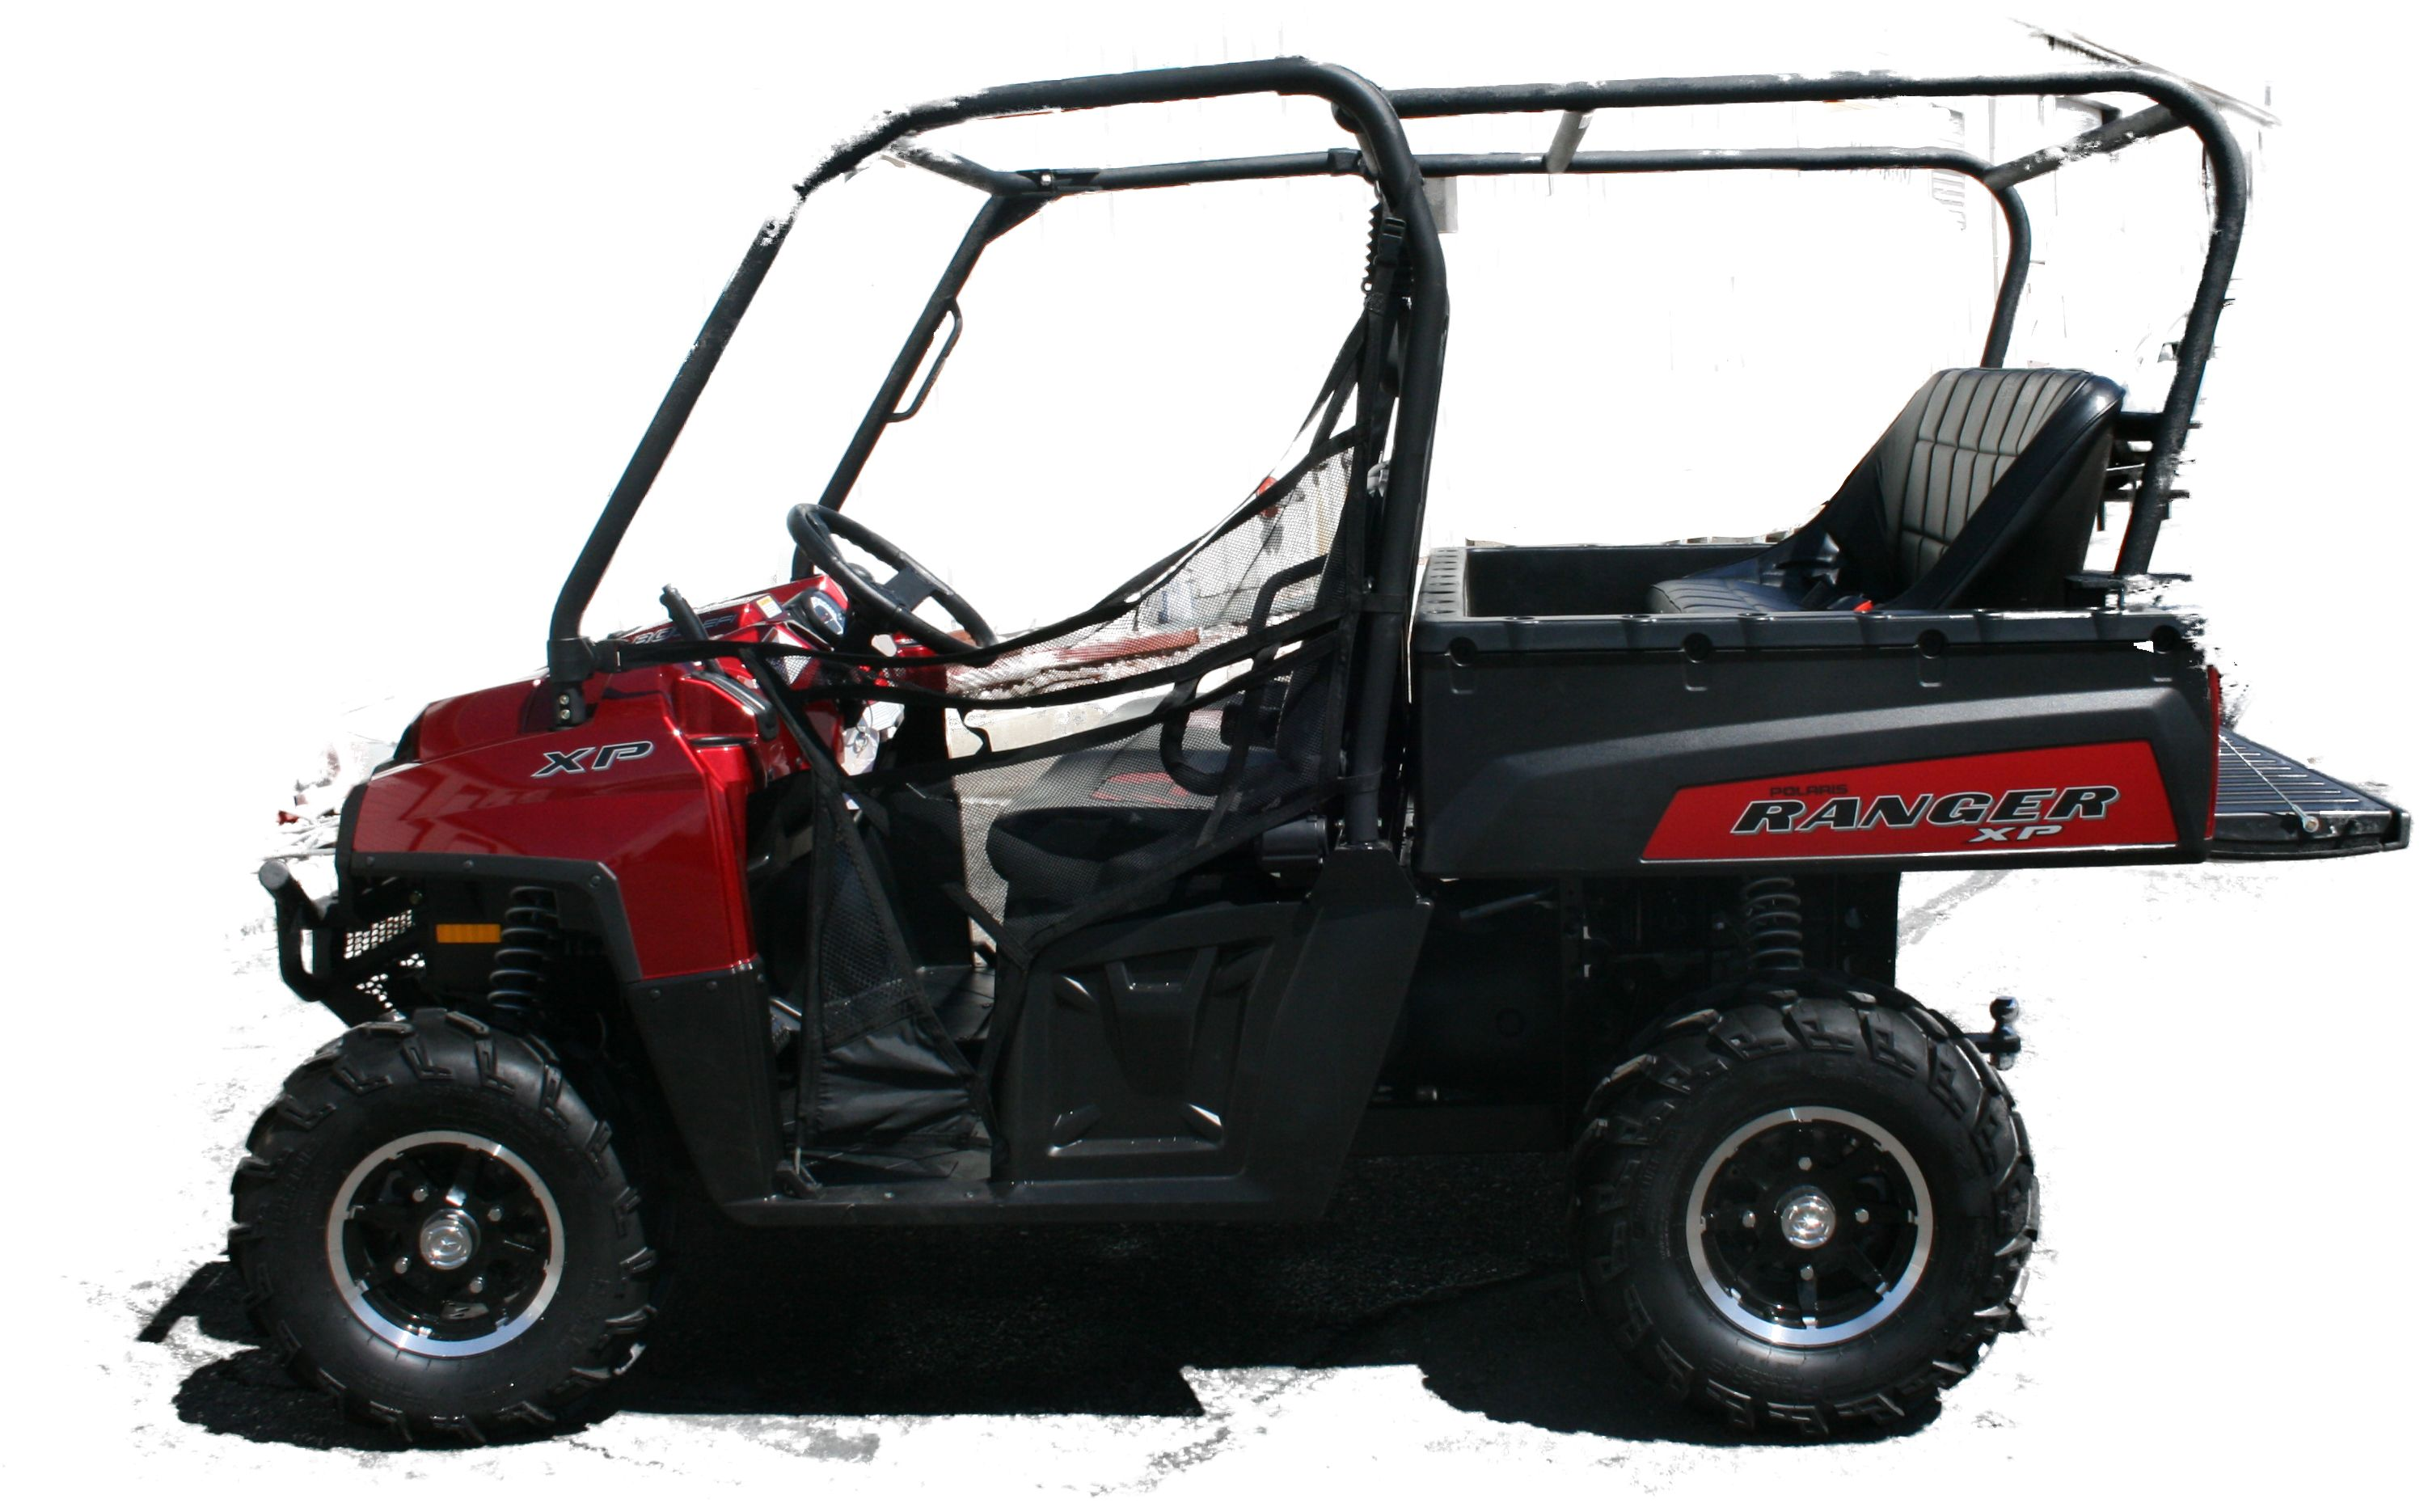 medium resolution of polaris ranger 800 back seat and roll cage kit designed to come in and out in minutes your kit includes polaris ranger 800 roll cage 42 bench seat 3 4